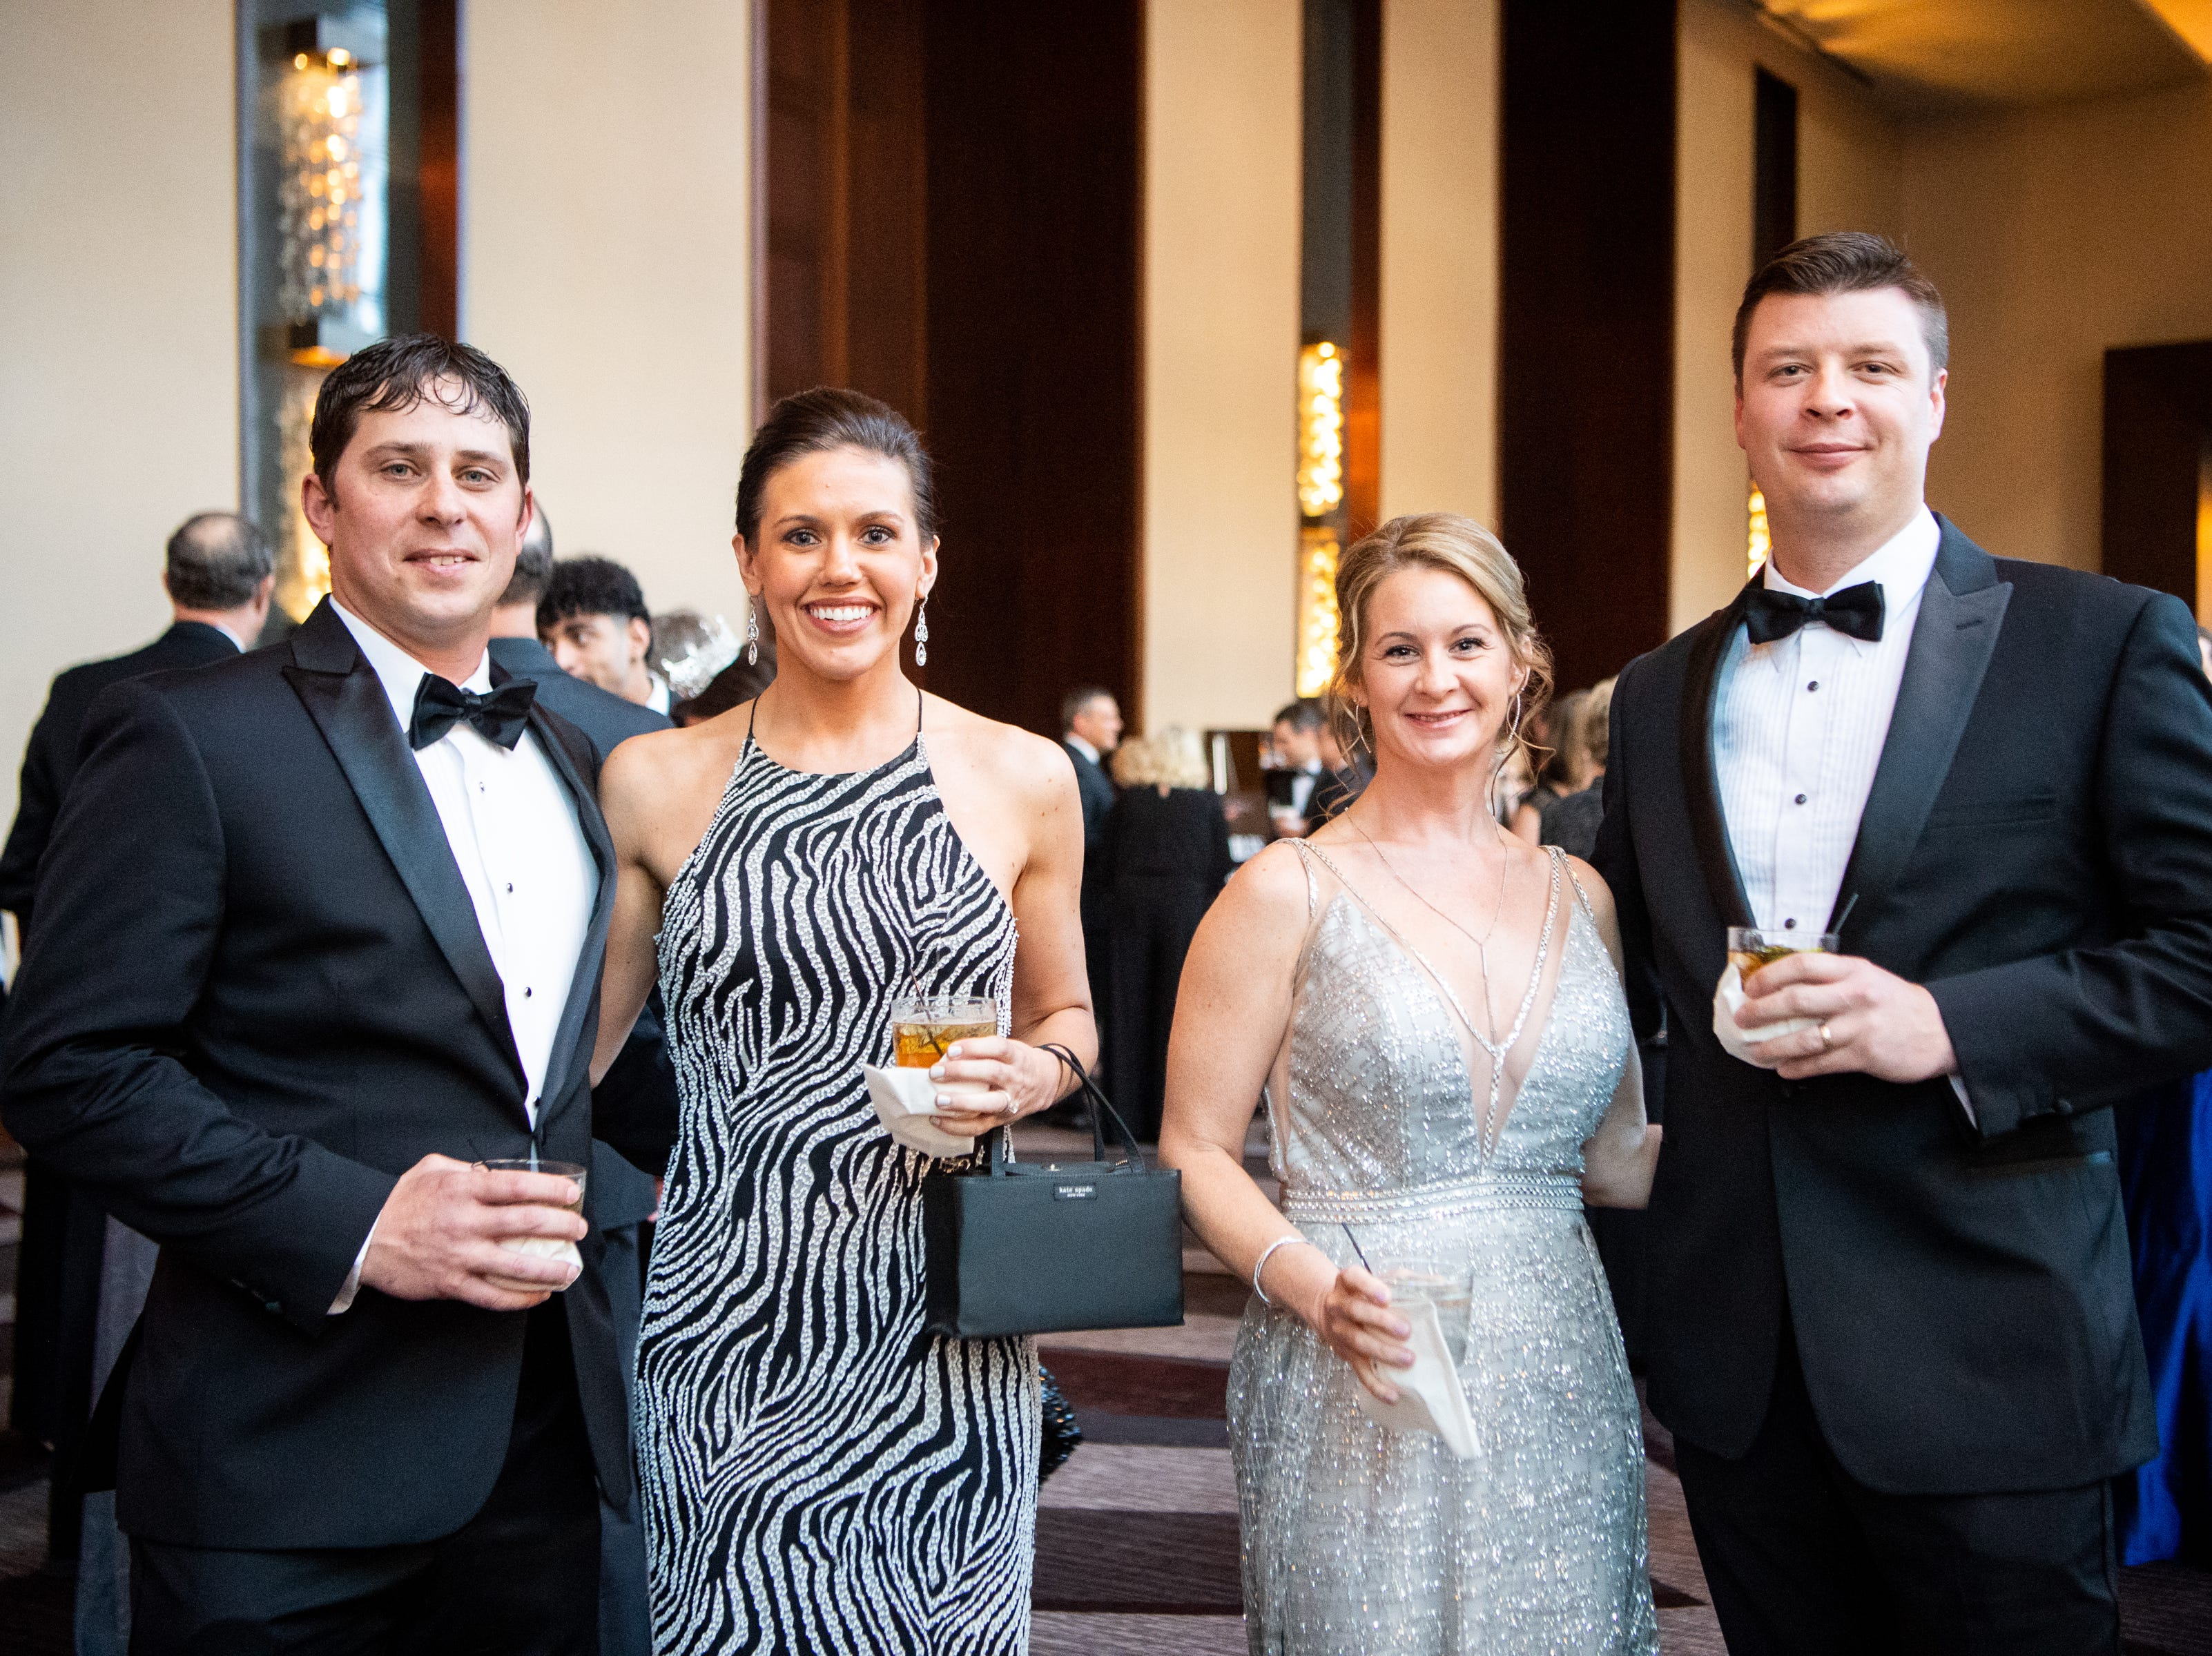 Jake and Mary Welch pose for a photo with Ben and Jody Stanley during Austin Peay State University's annual Candlelight Ball at the Omni Nashville Hotel Saturday, March 16, 2019, in Nashville, Tenn.